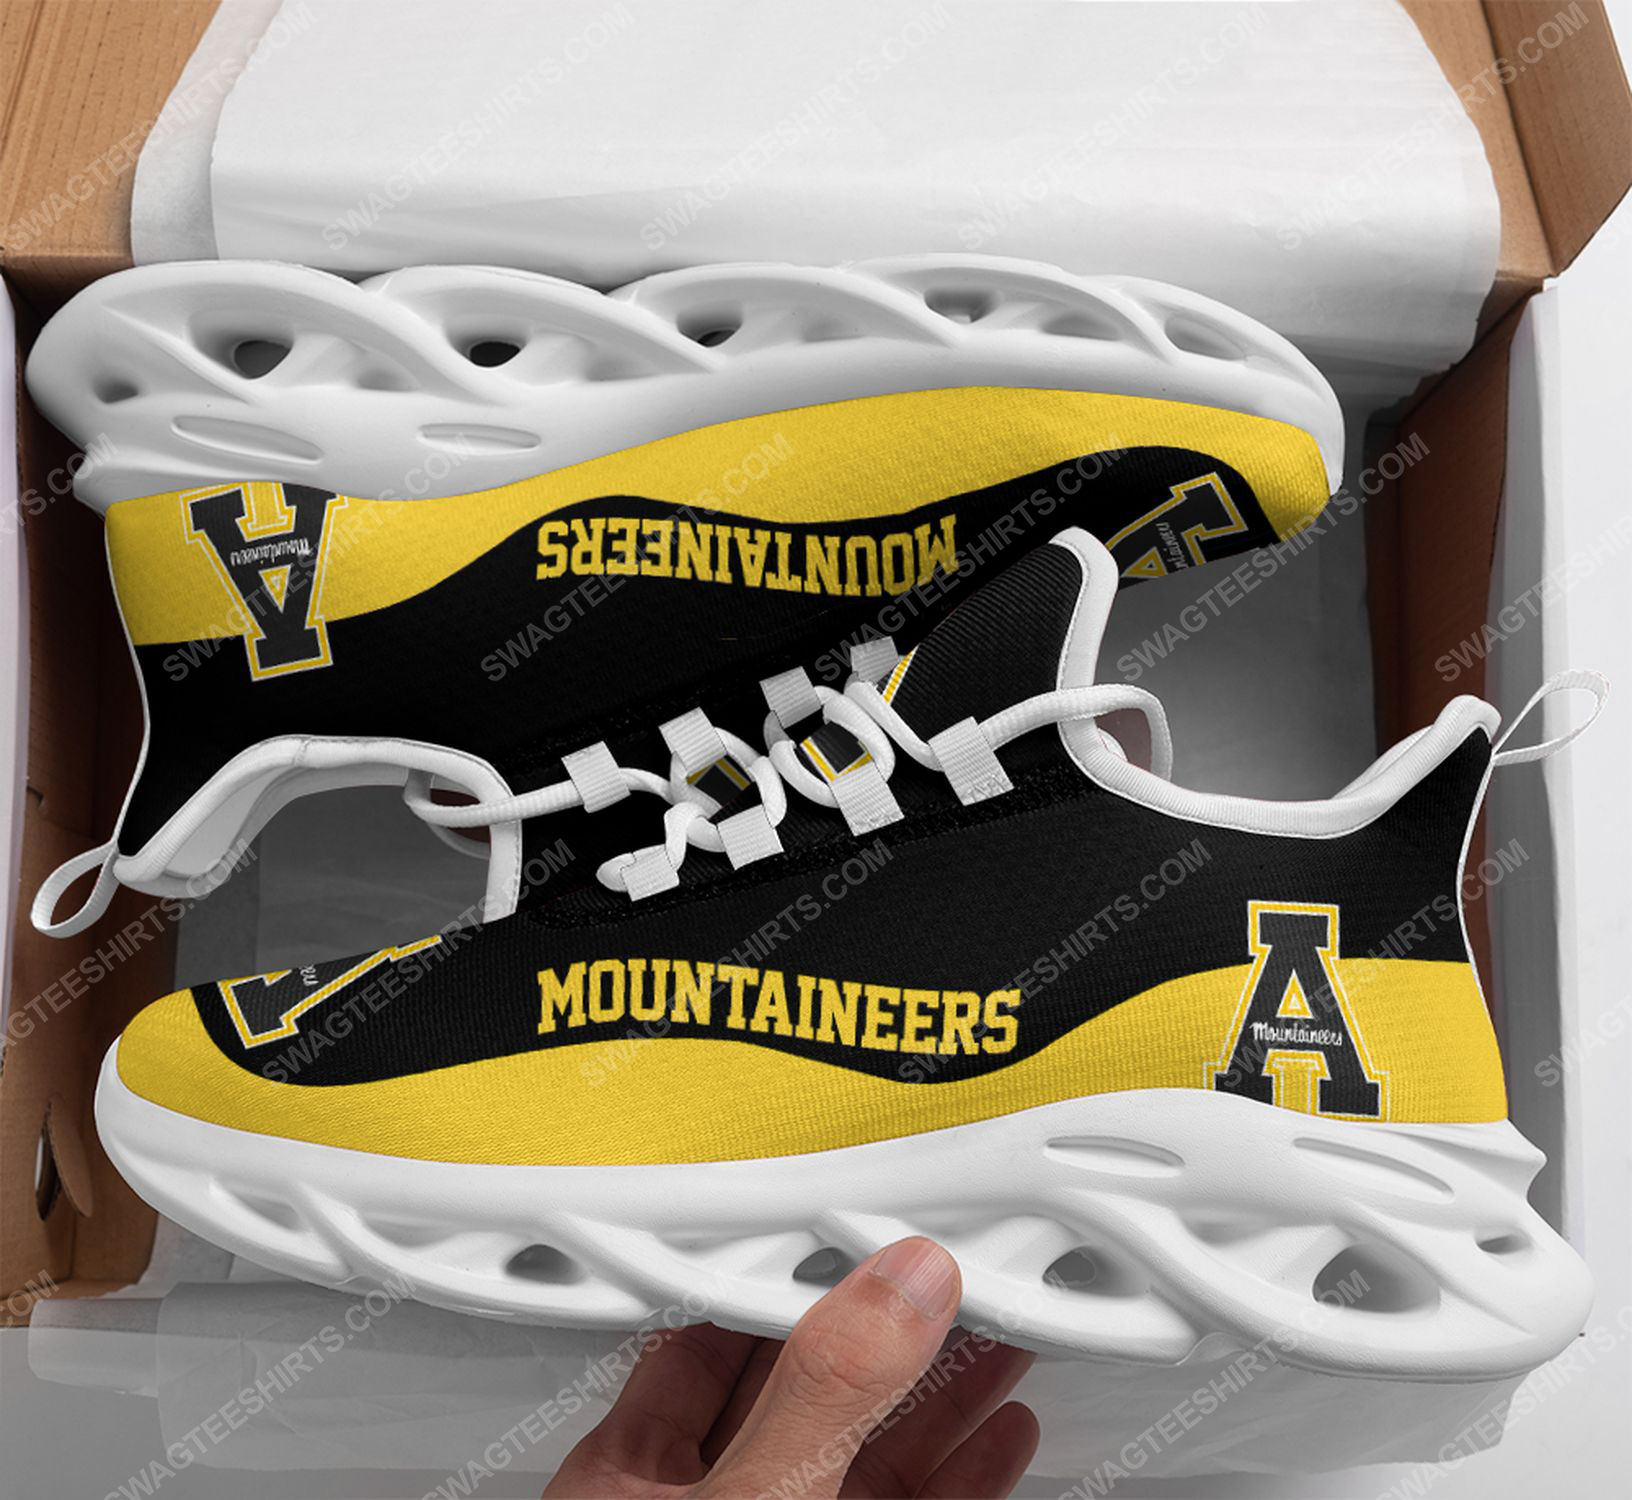 The appalachian state mountaineers football team max soul shoes 1